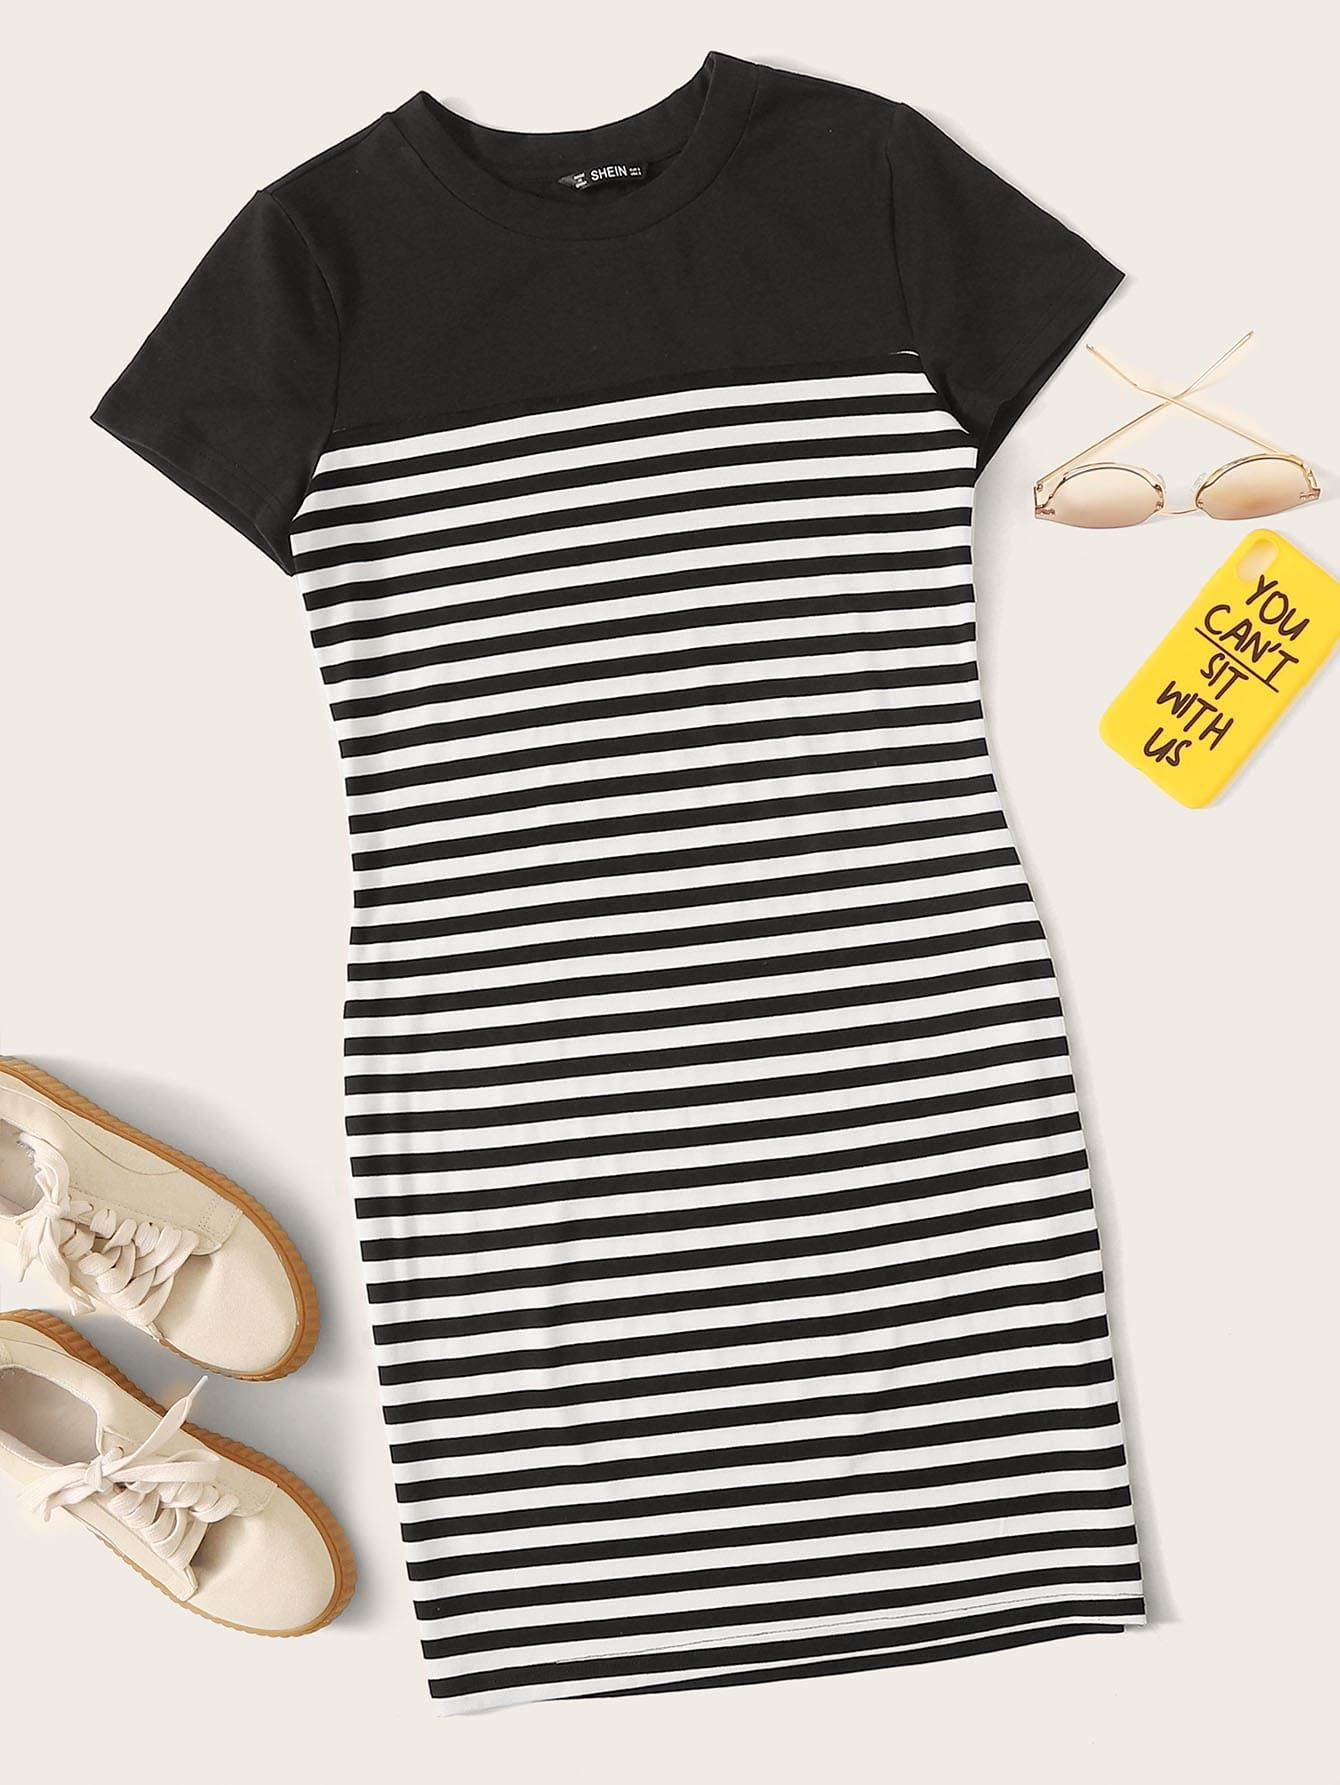 Ad Solid Yoke Striped Bodycon Dress Tags Casual Black And White Striped Round Neck Short Bodycon Sho Striped Bodycon Dress Striped Dress Bodycon Dress [ 1785 x 1340 Pixel ]